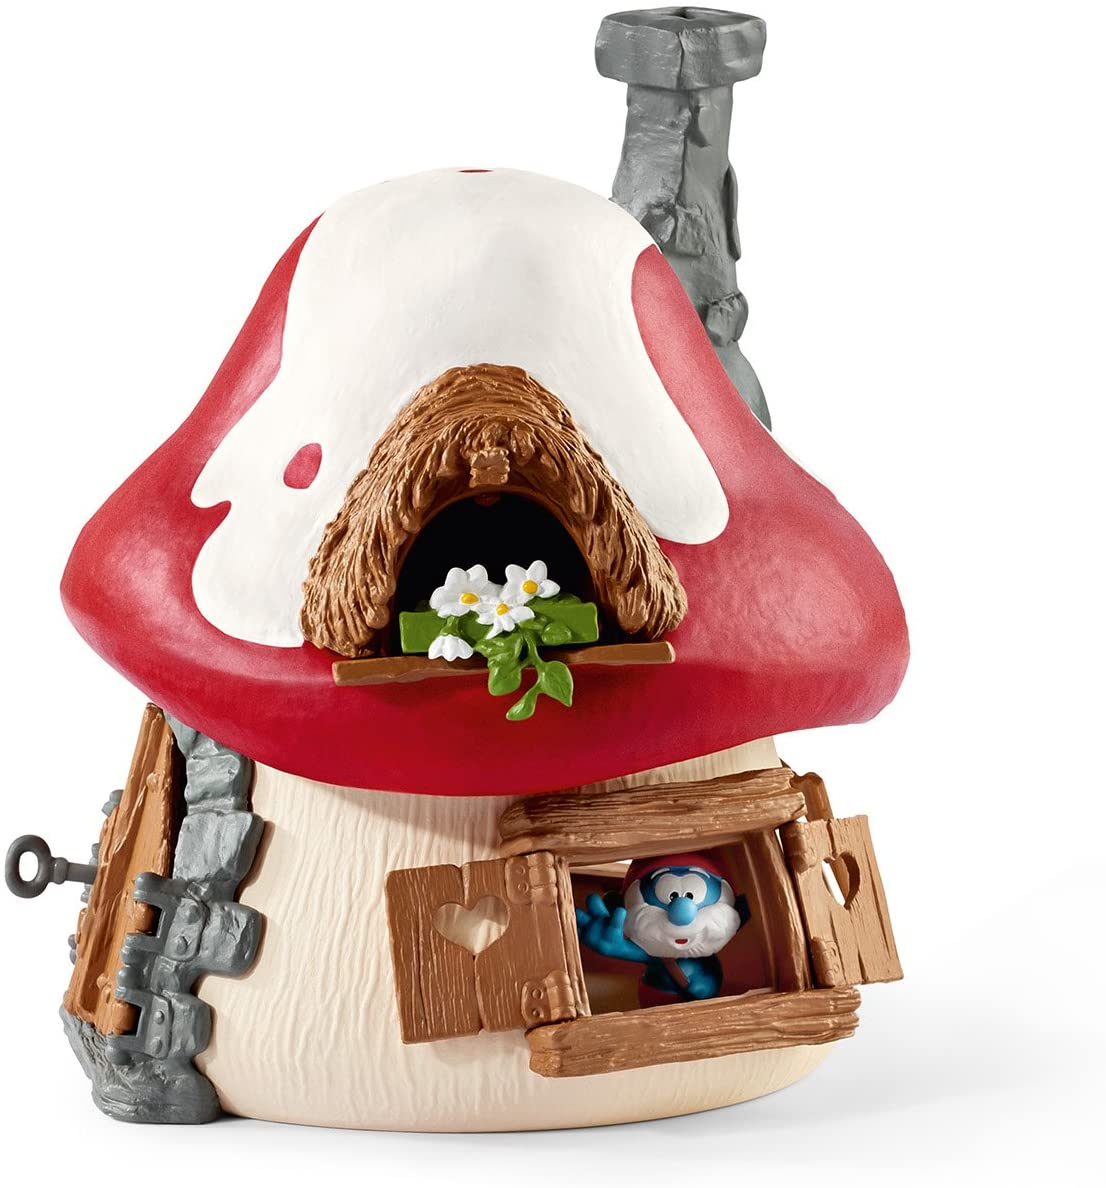 Schleich 20803 Smurf House with Papa Smurf and Gargamel-Collection resolution OVP